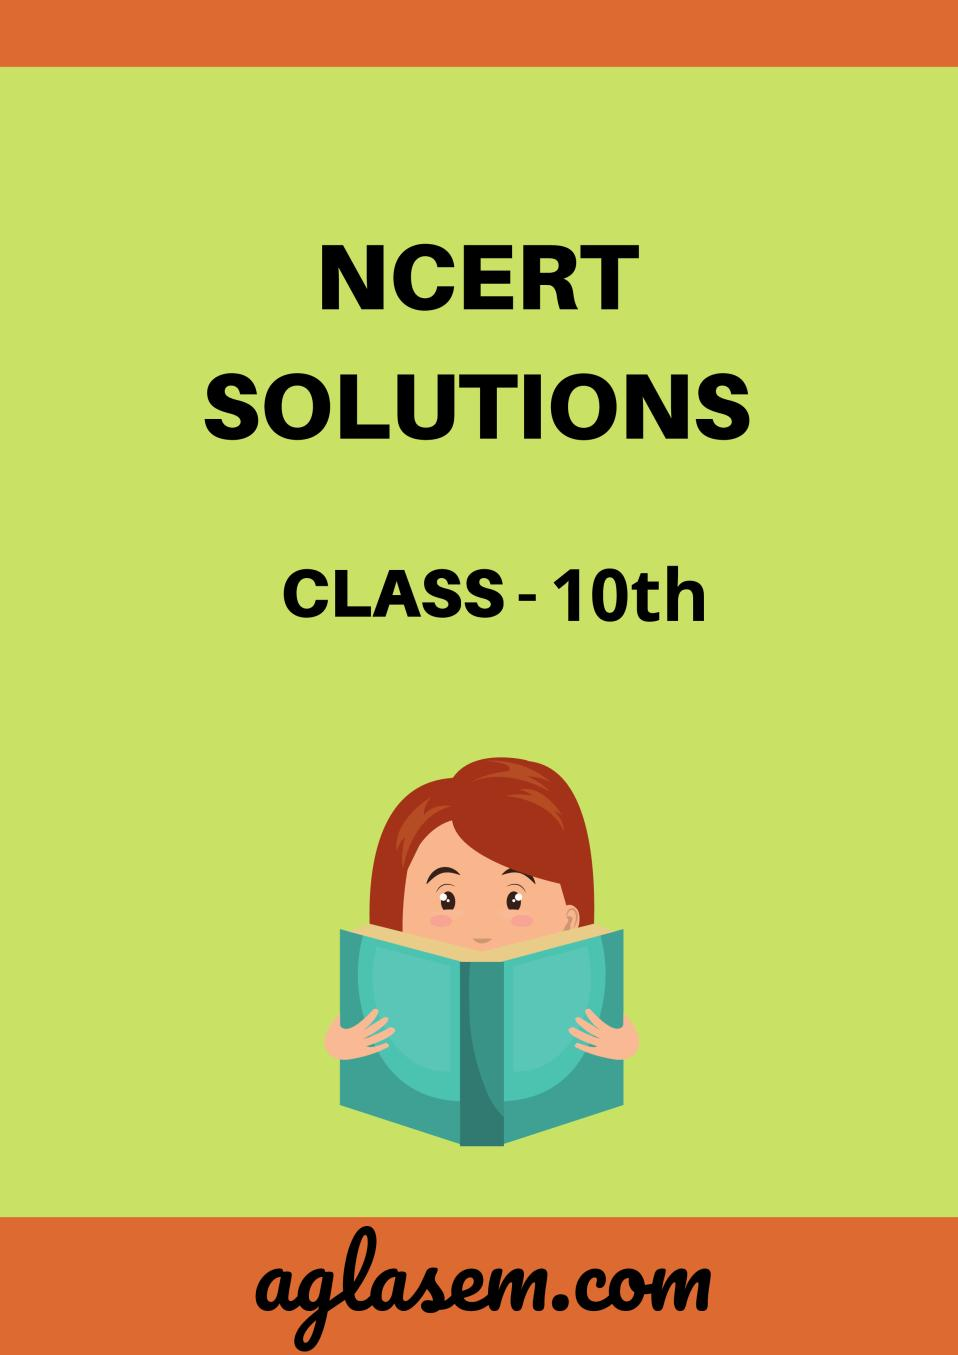 NCERT Solutions for Class 10 Social Science Econimics Chapter 4 Globalization and the Indian Economy